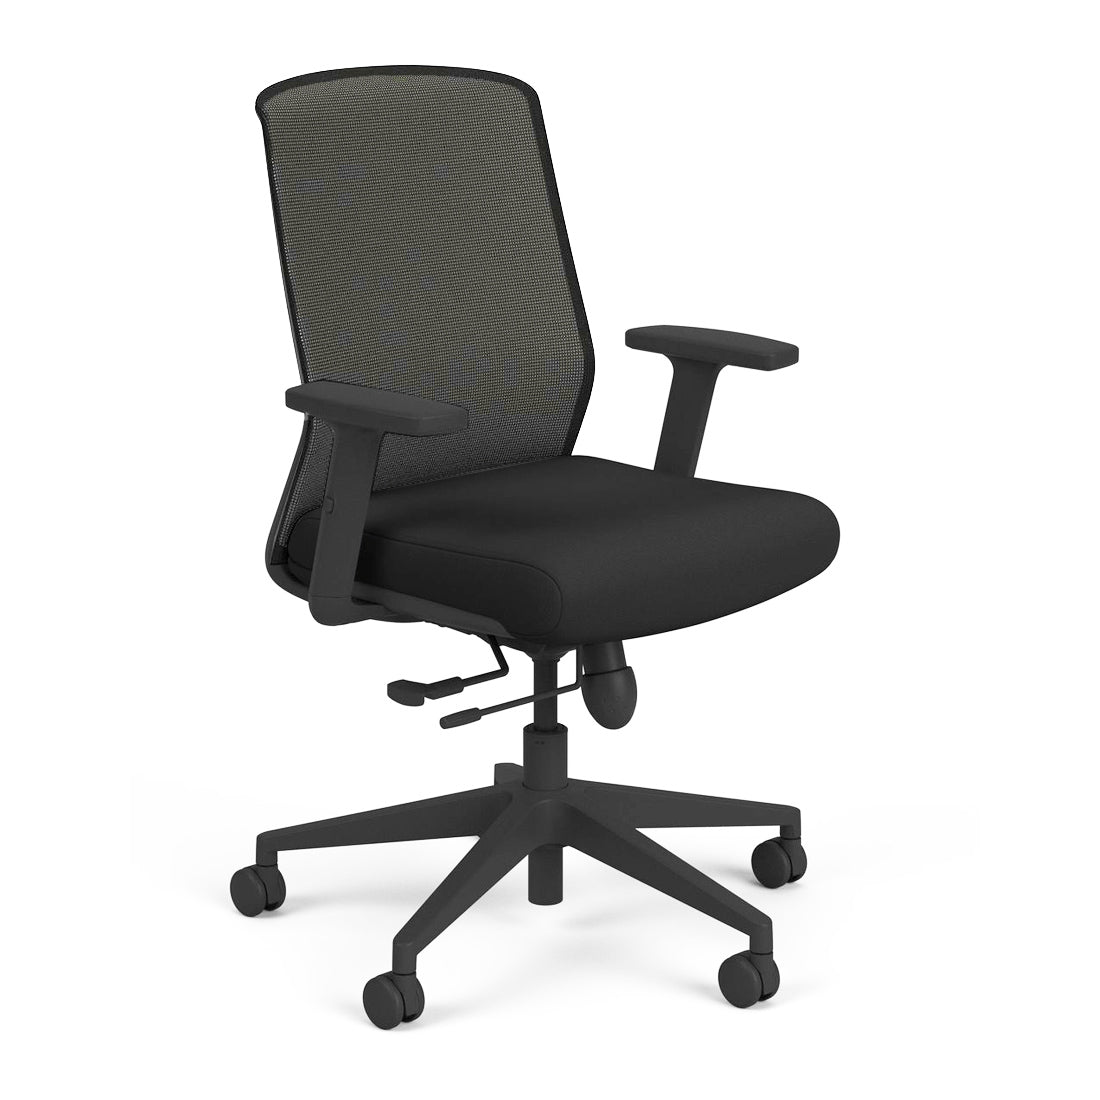 Element - Carbon1 Ergonomic Office Chair - Duckys Office Furniture